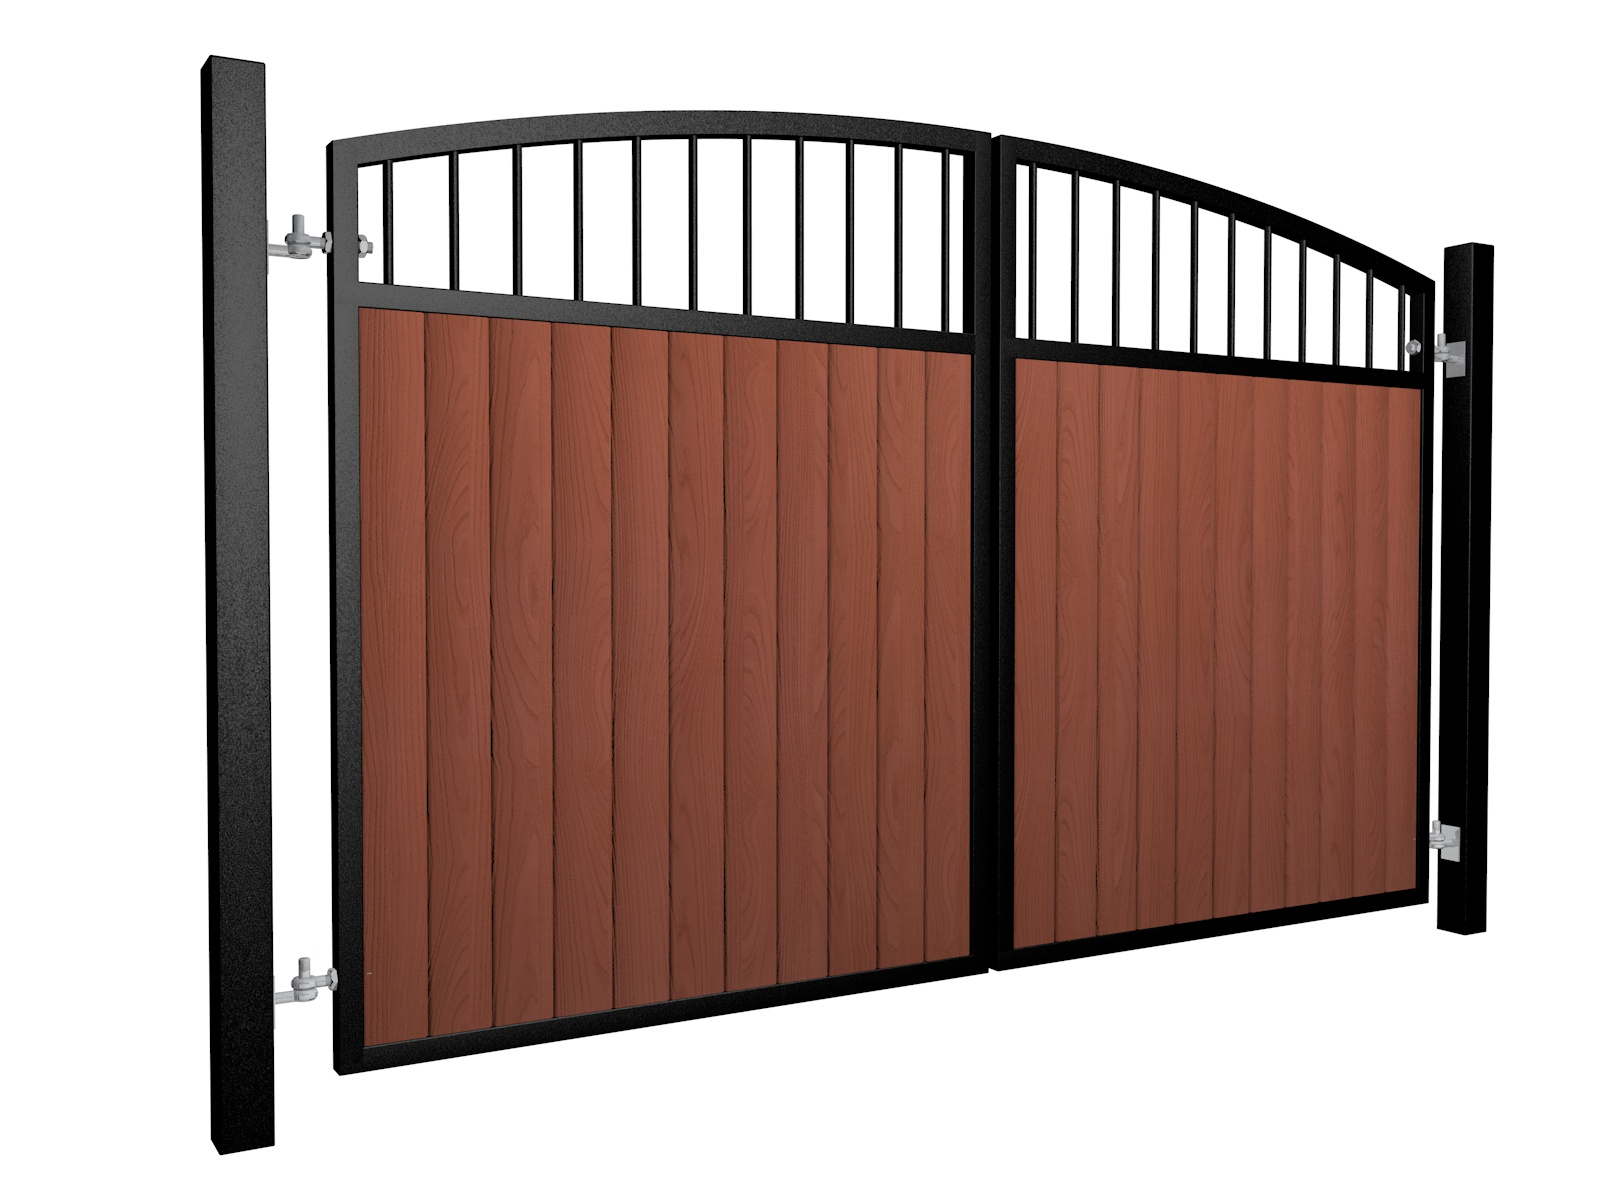 metal framed wood fill open arch top automated gate